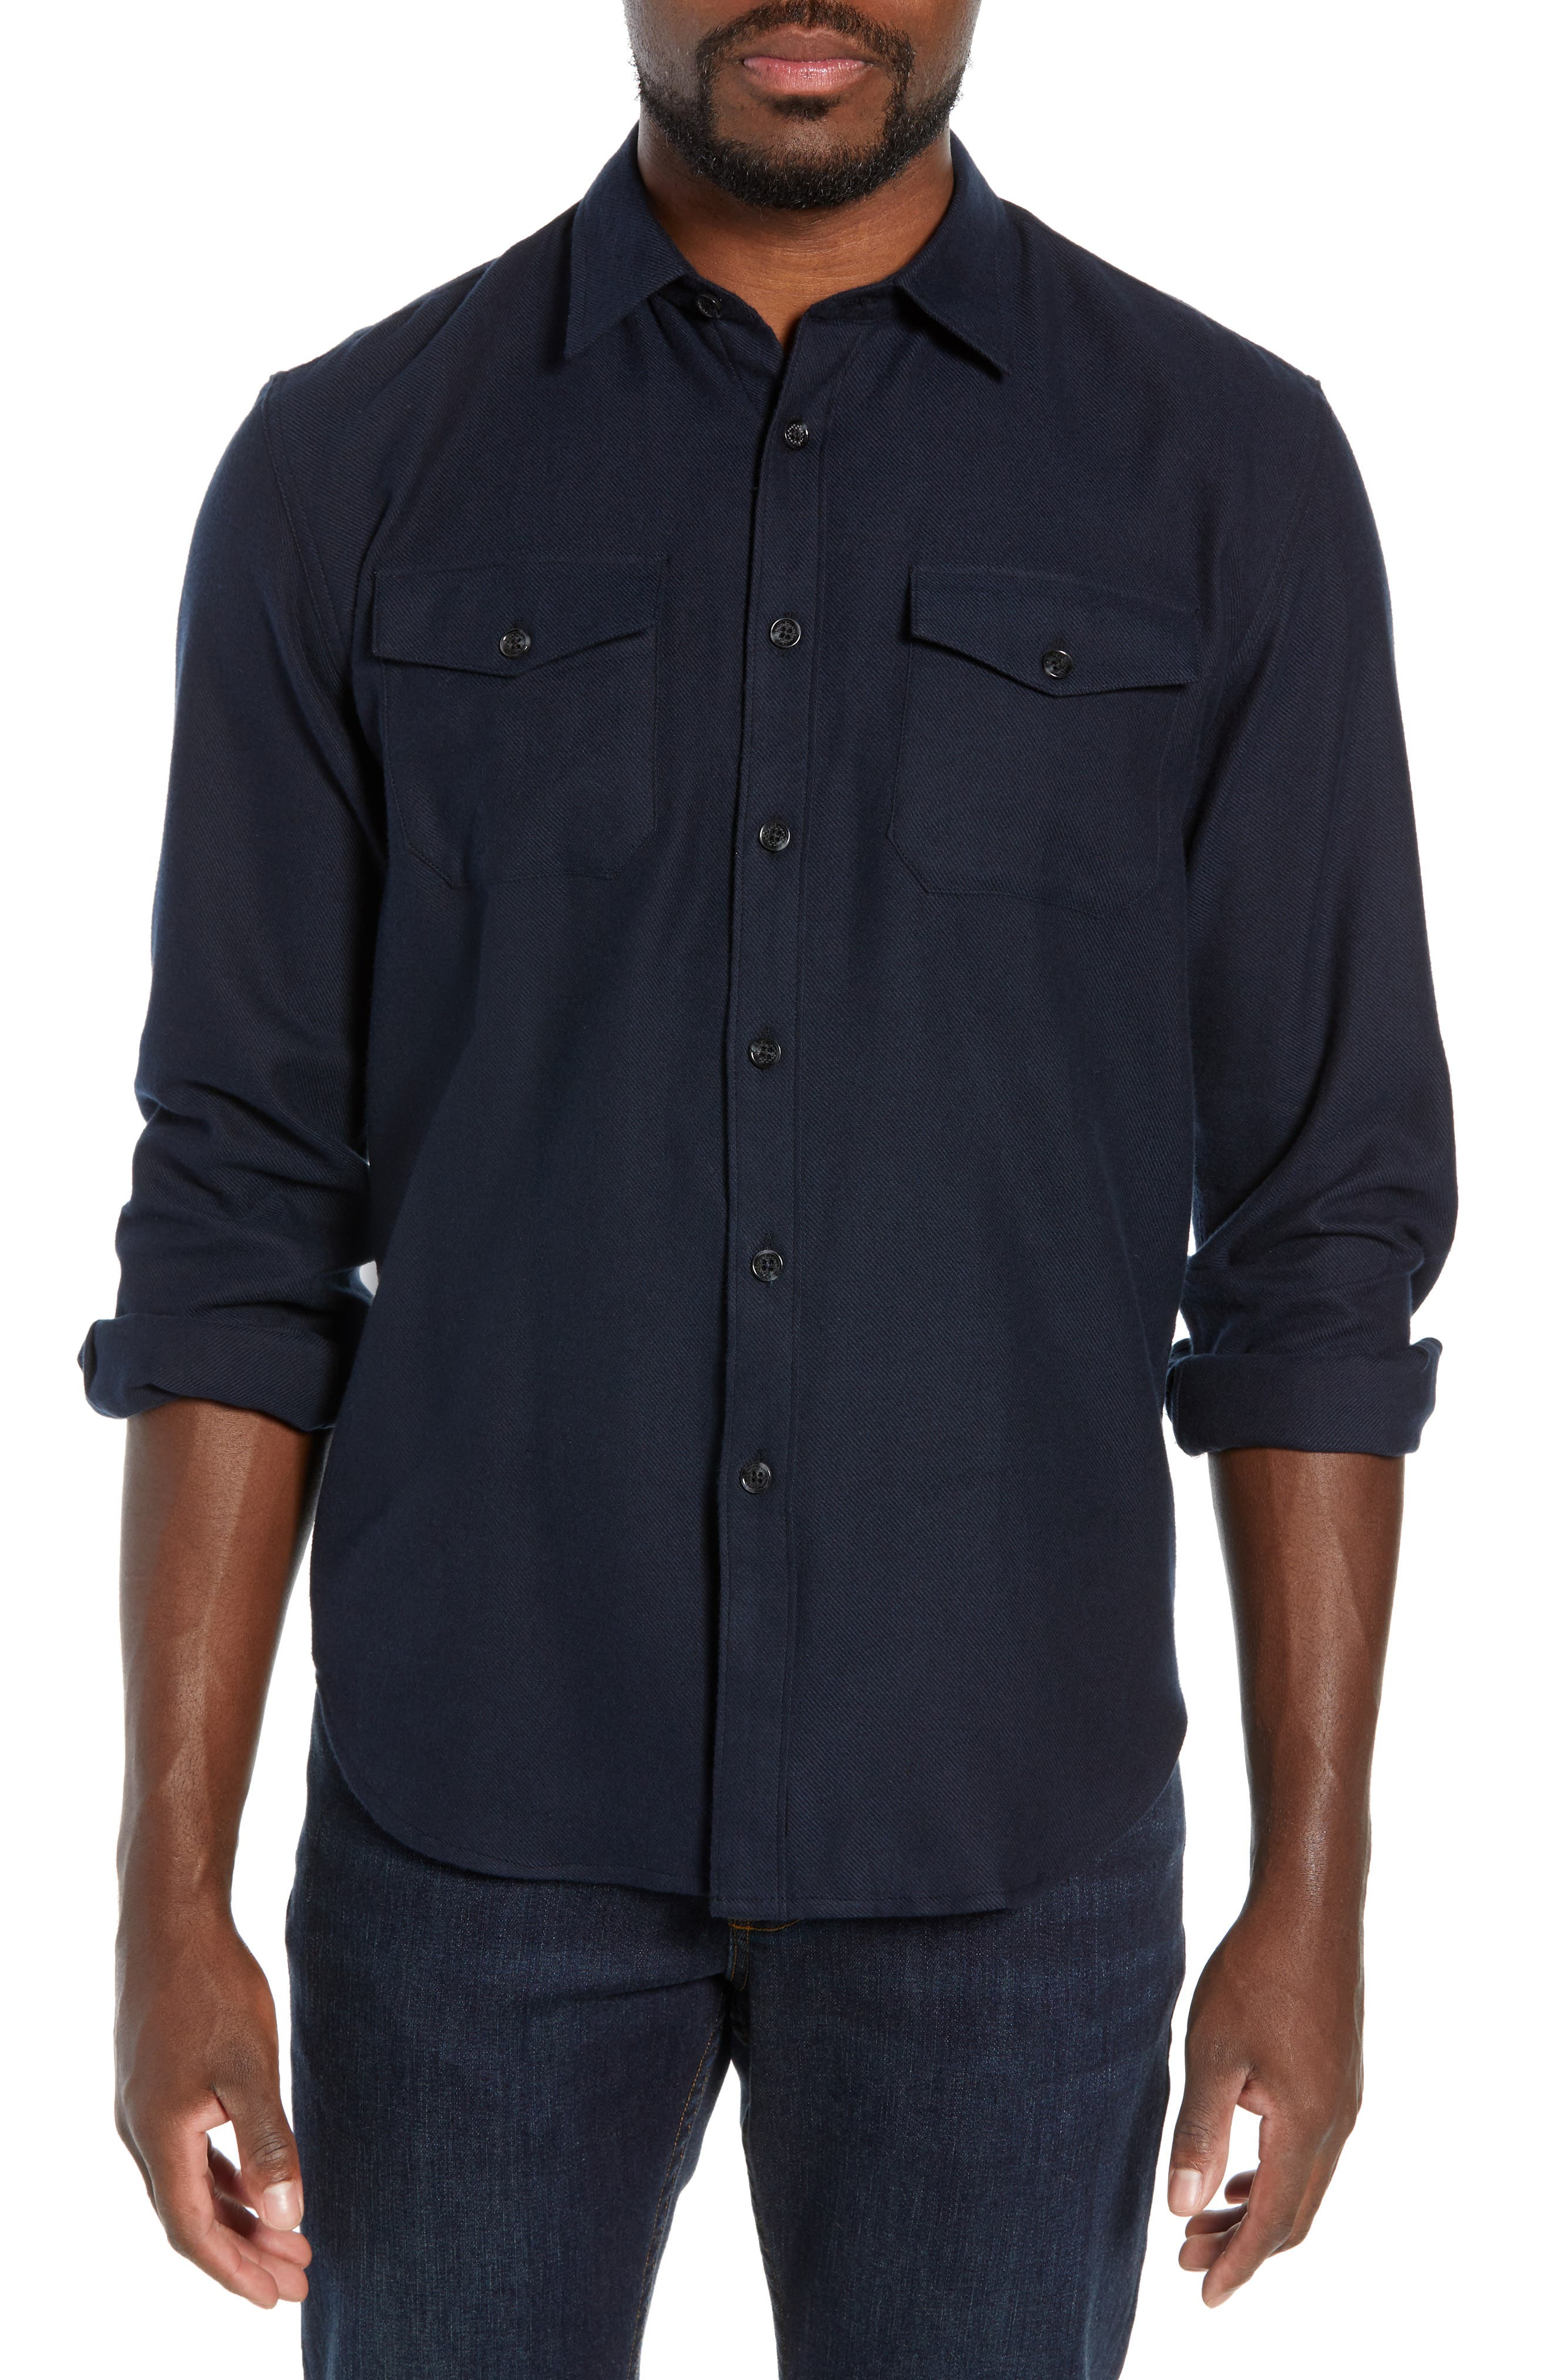 Coastaoro Casitas Regular Fit Flannel Shirt